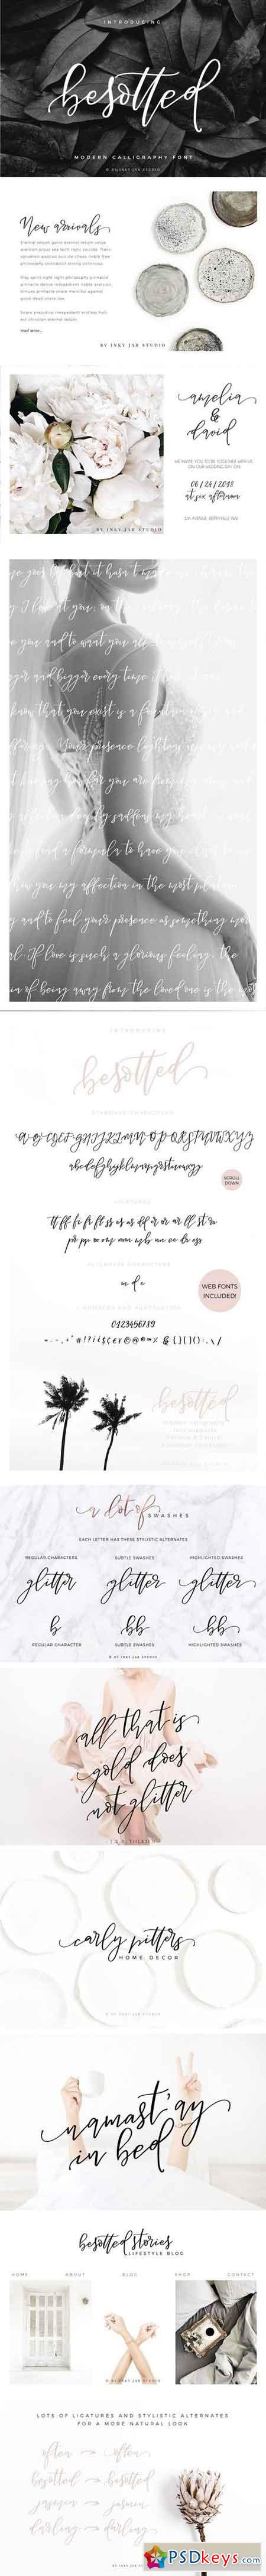 Besotted Modern Calligraphy Script 2059608